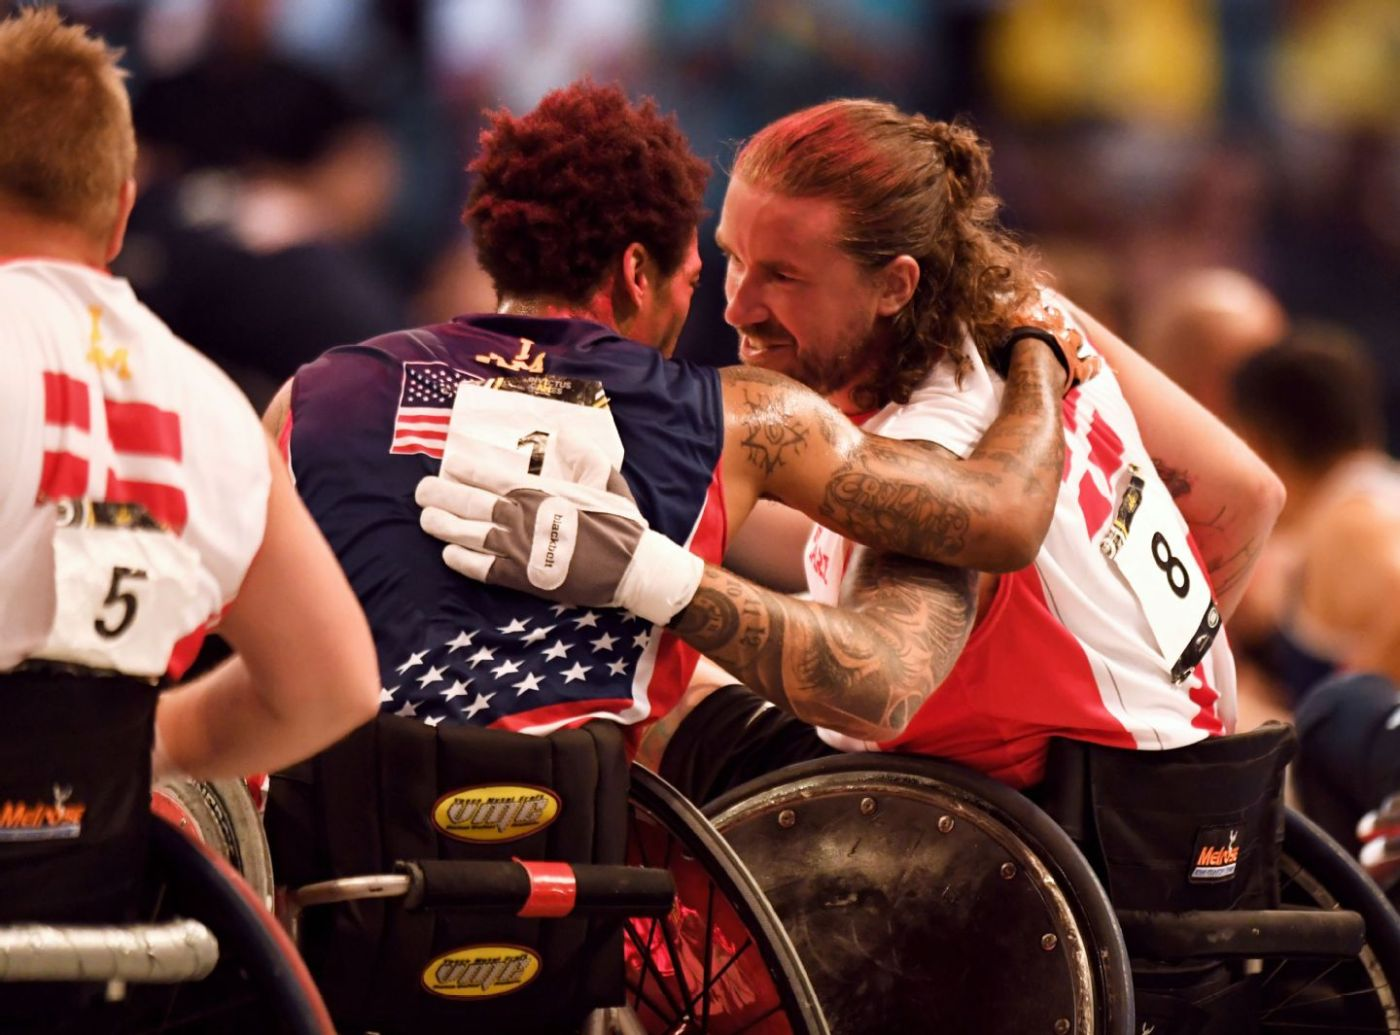 The World Games 2022 inclusion - two wheelchair rugby players pat each other on the back